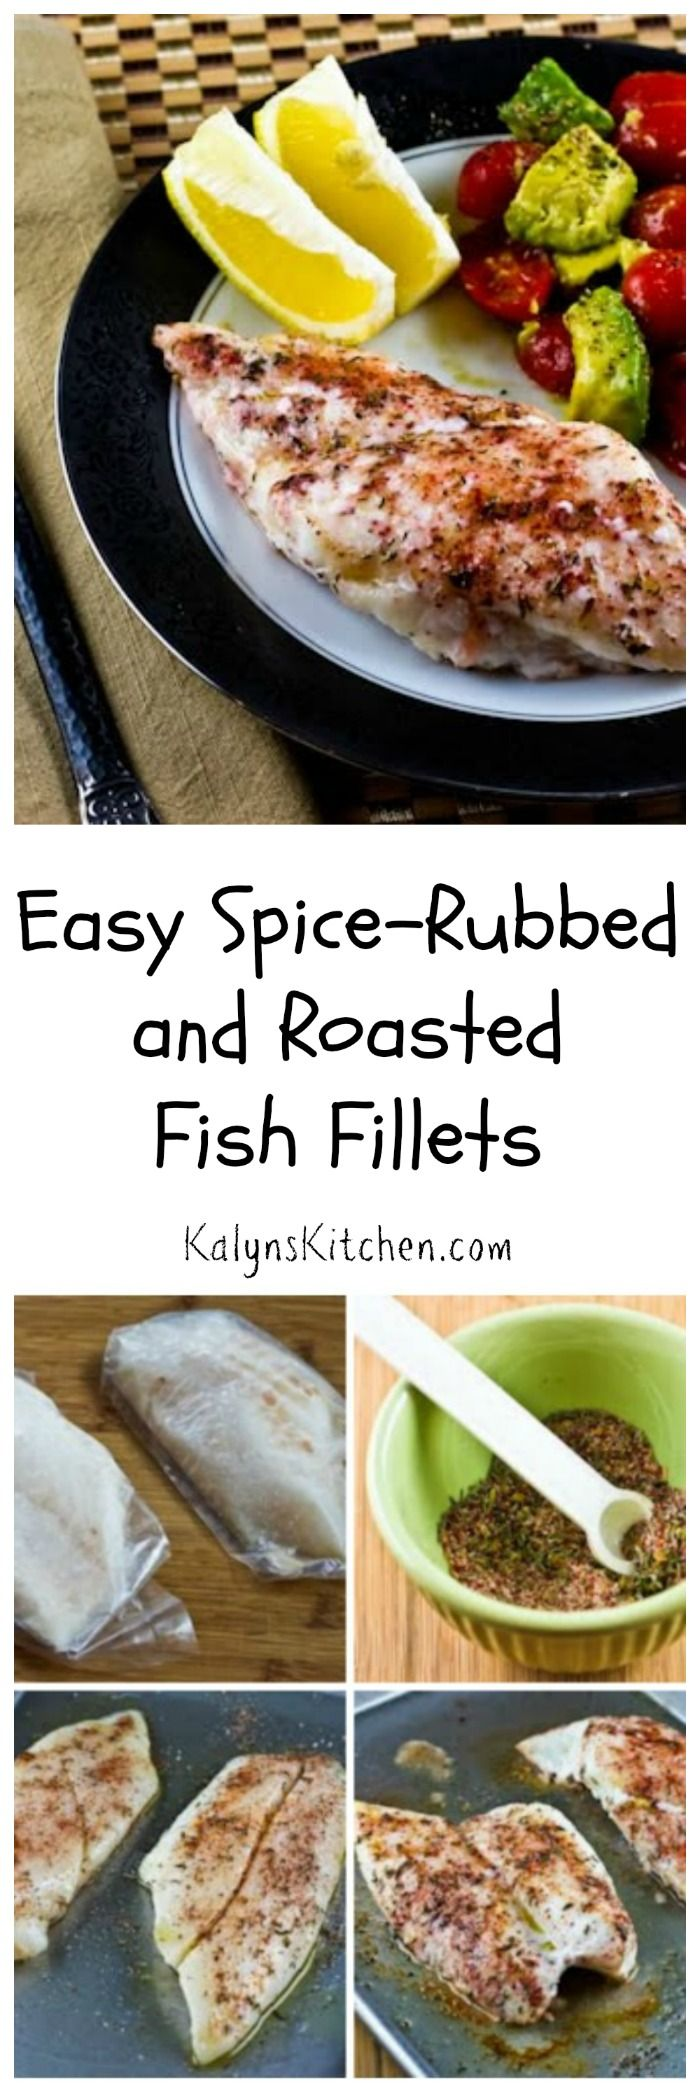 Best 25 baked fish fillet ideas on pinterest cod for Low carb fish recipes